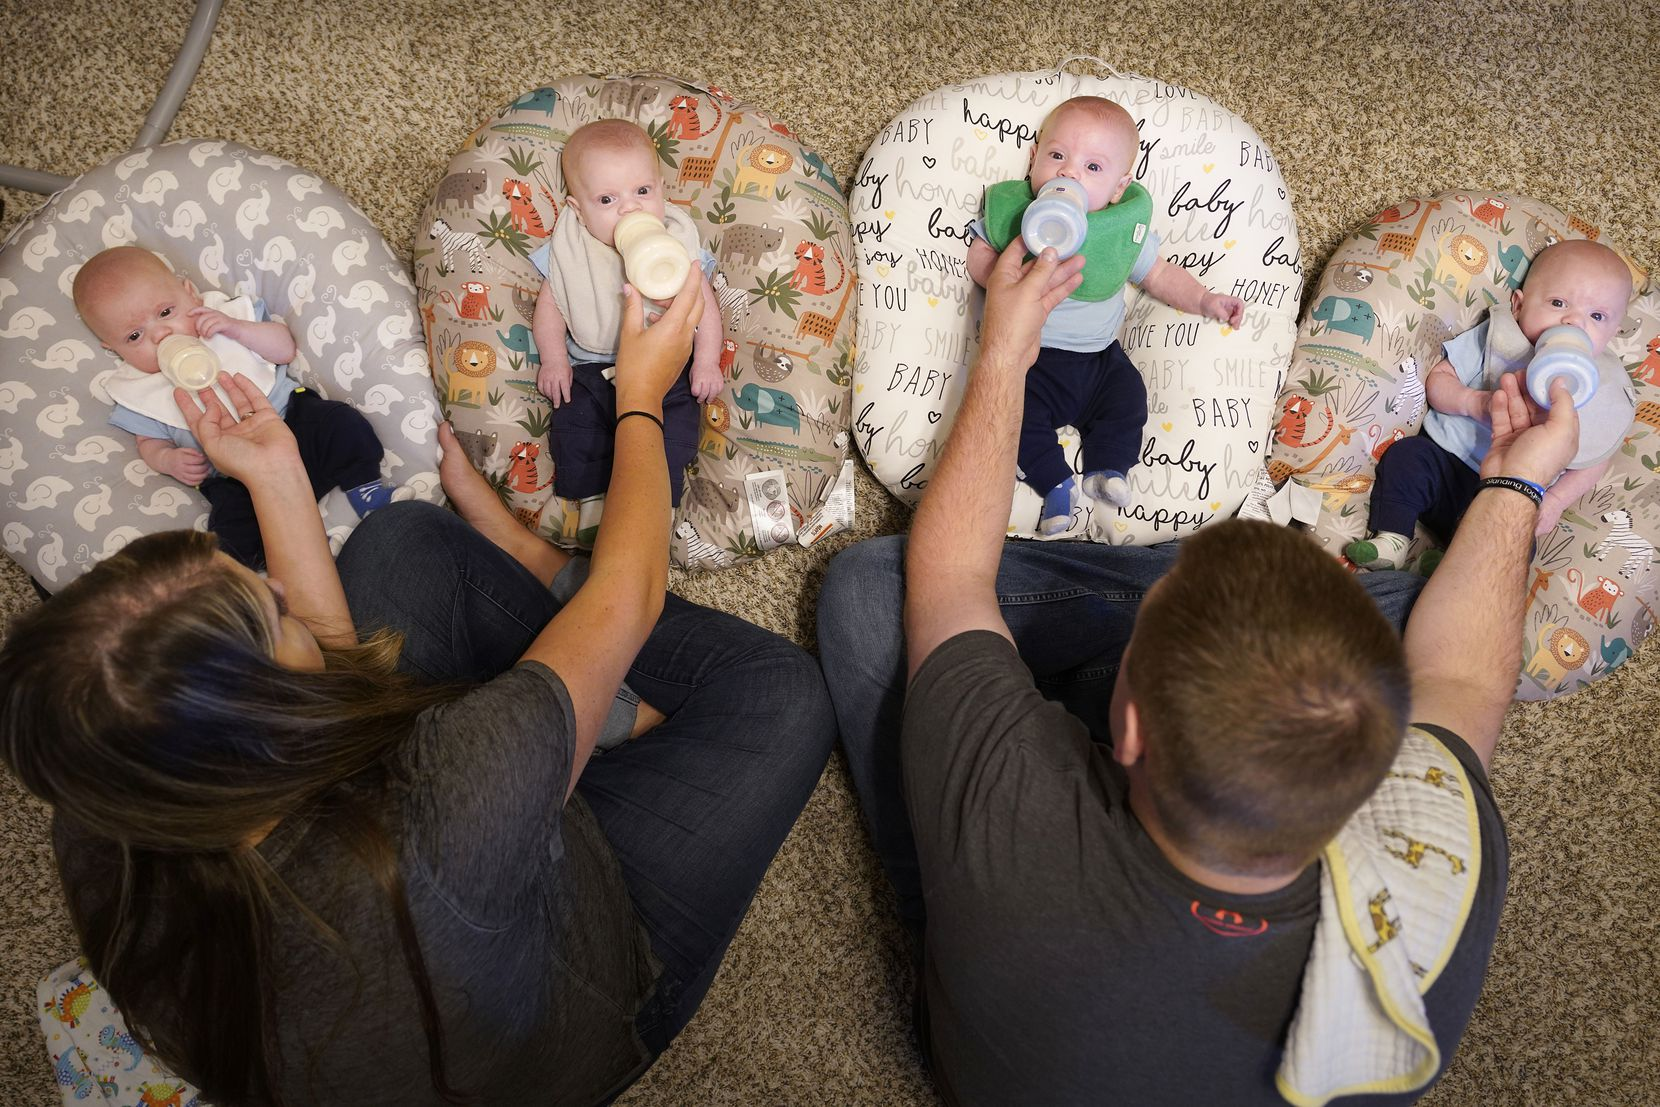 Katie and Chris Sturm feed quadruplets (from left) Hudson, Daniel, Austin and Jacob, who were born in July, on Tuesday, Sept. 29, 2020, in Haslet, Texas. (Smiley N. Pool/The Dallas Morning News)